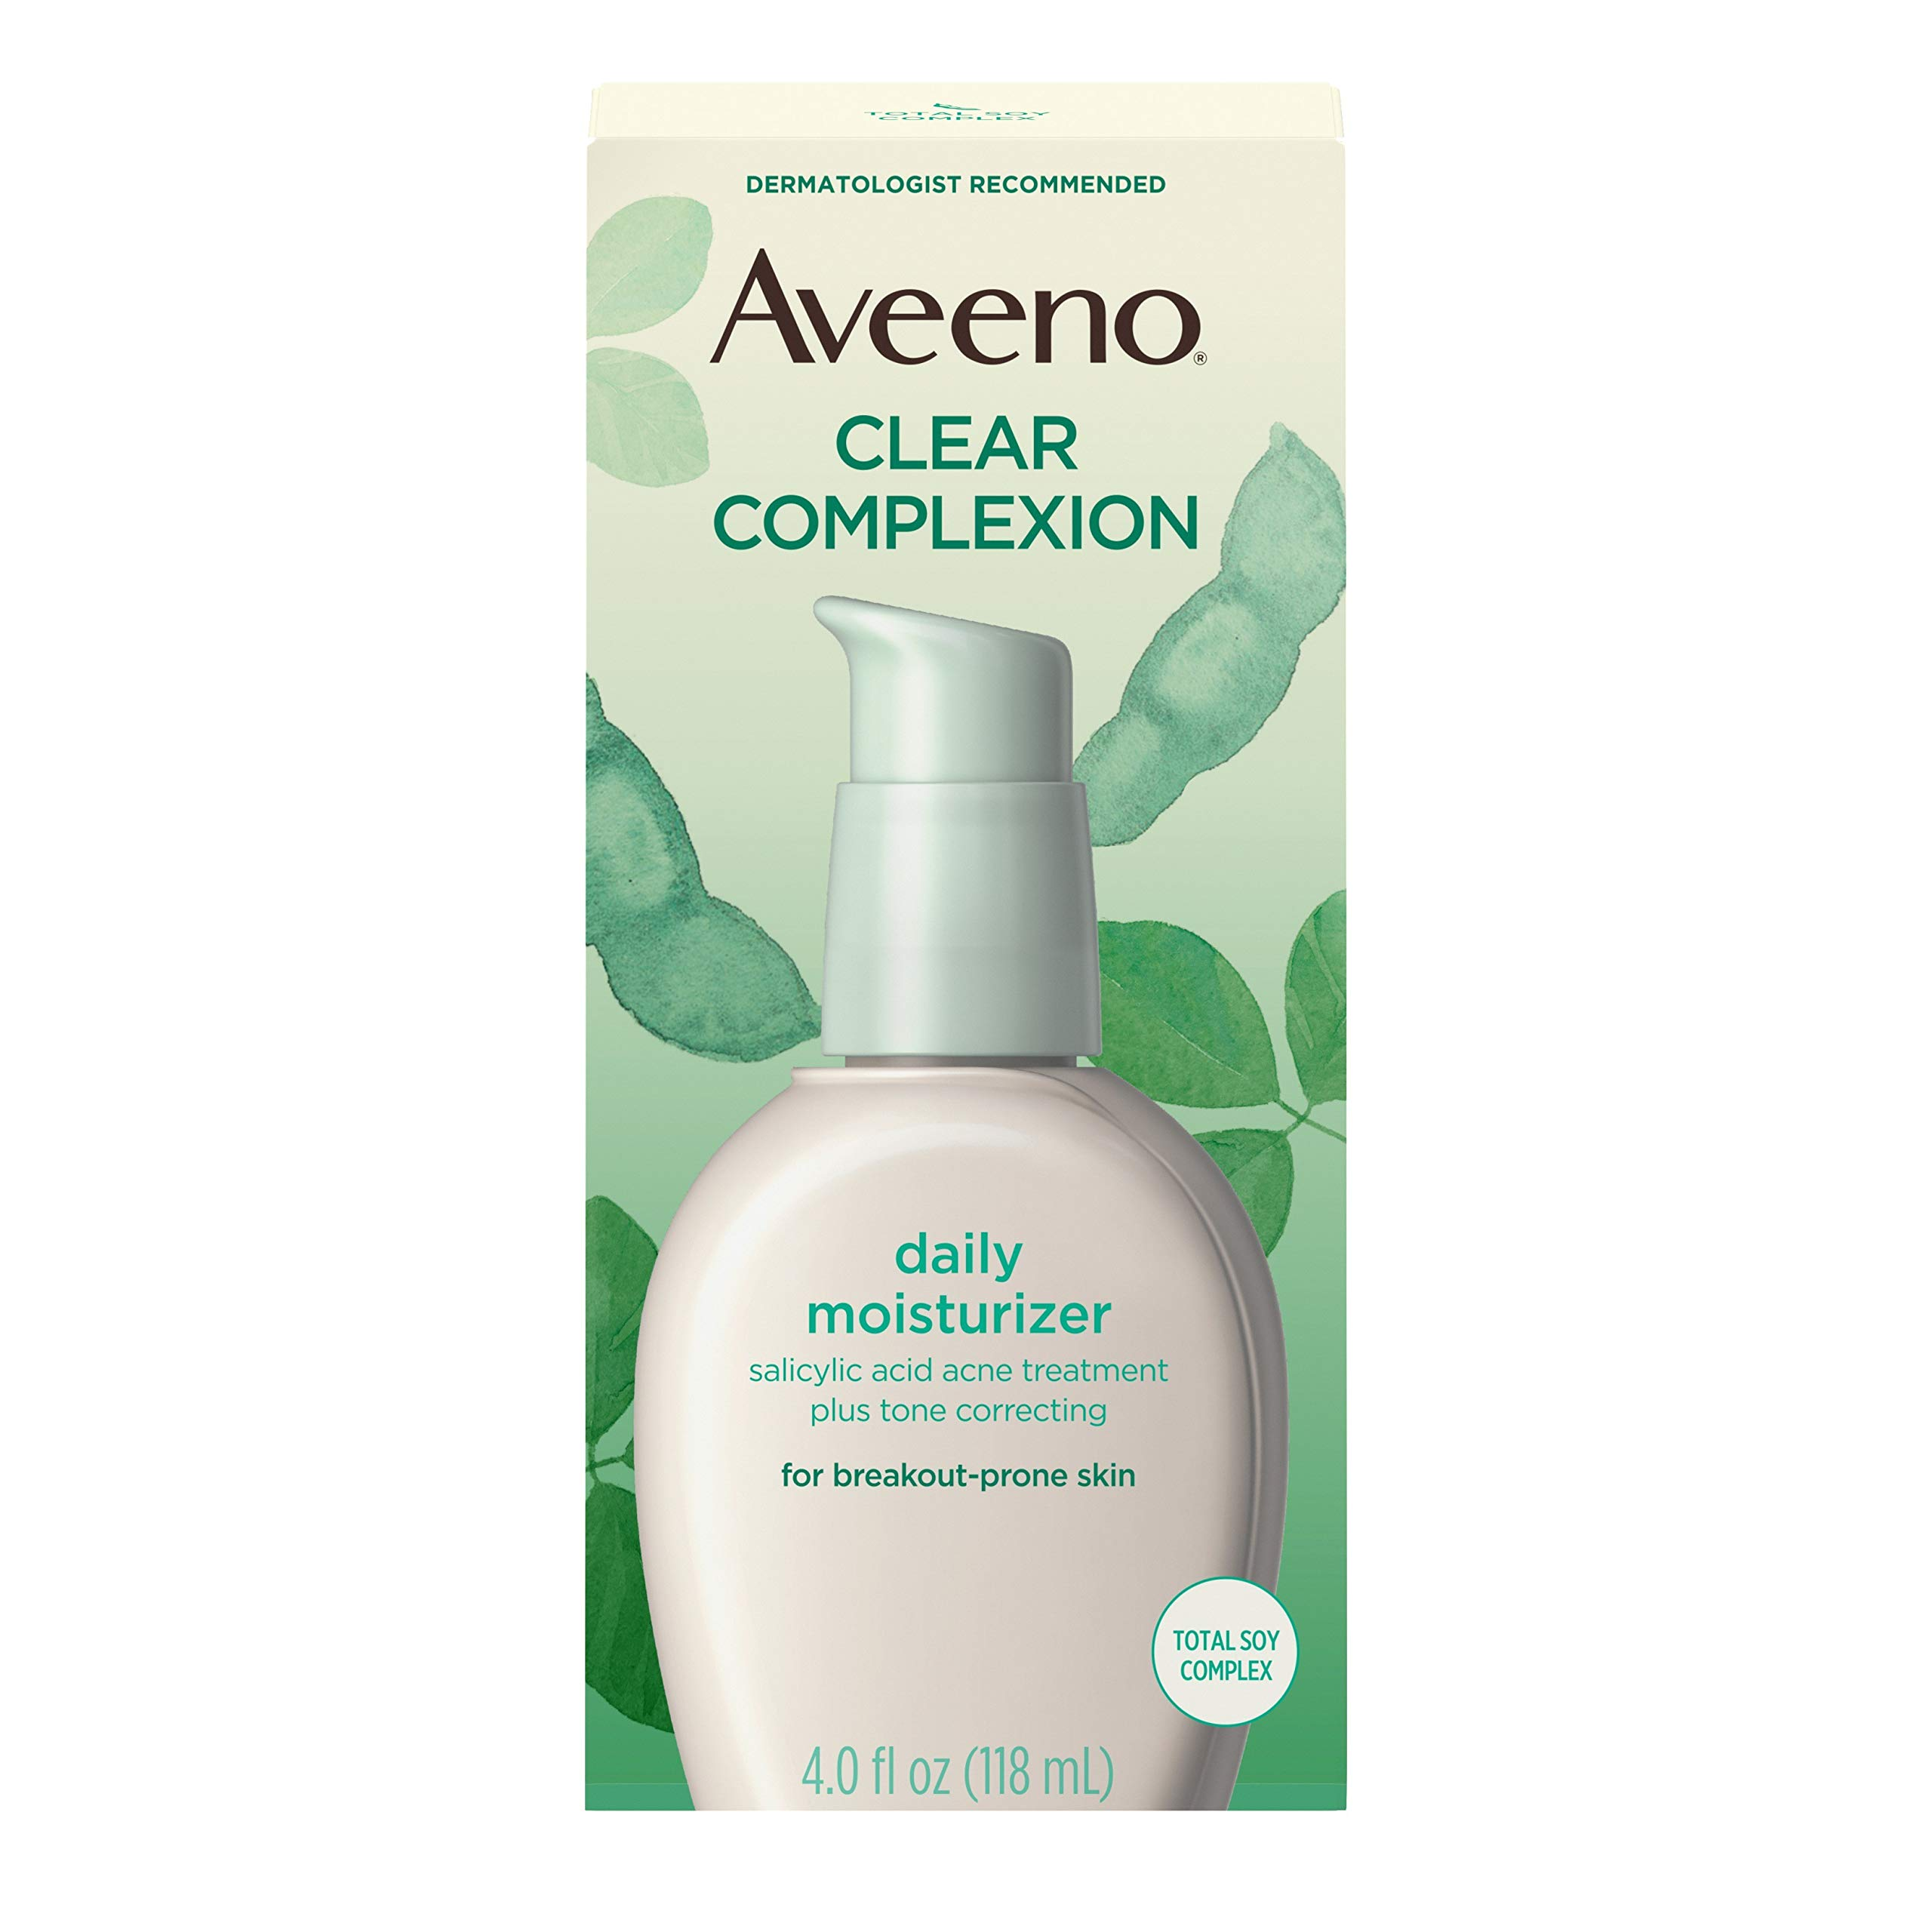 Aveeno Clear Complexion Salicylic Acid Acne-Fighting Daily Face Moisturizer with Total Soy Complex, For Breakout-Prone Skin, Oil-Free and Hypoallergenic, 4 fl. oz by Aveeno